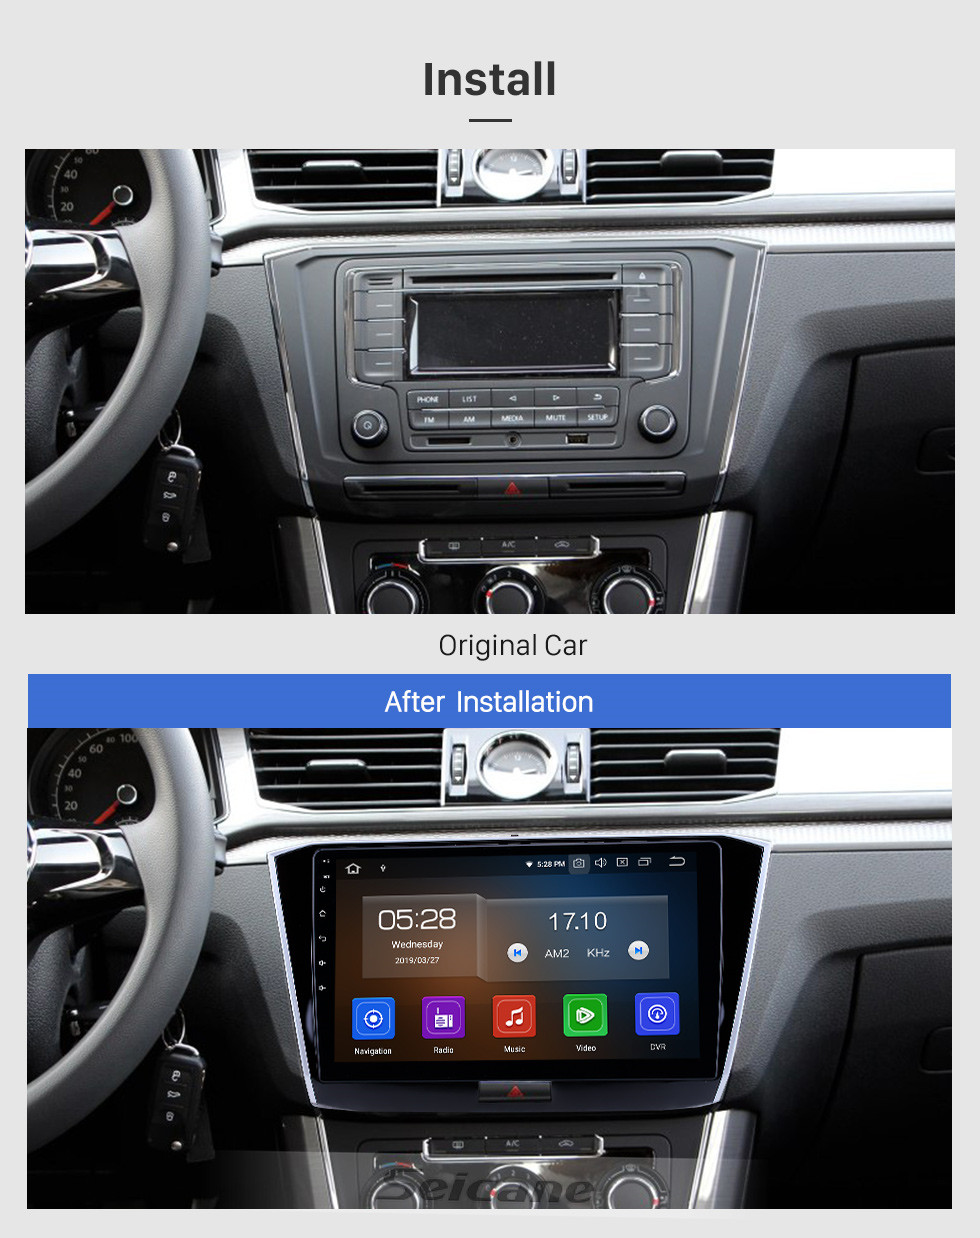 Seicane 10,1 pouces Android 10.0 Radio de navigation GPS pour 2016-2018 VW Volkswagen Passat avec support tactile HD Bluetooth USB Carplay TPMS